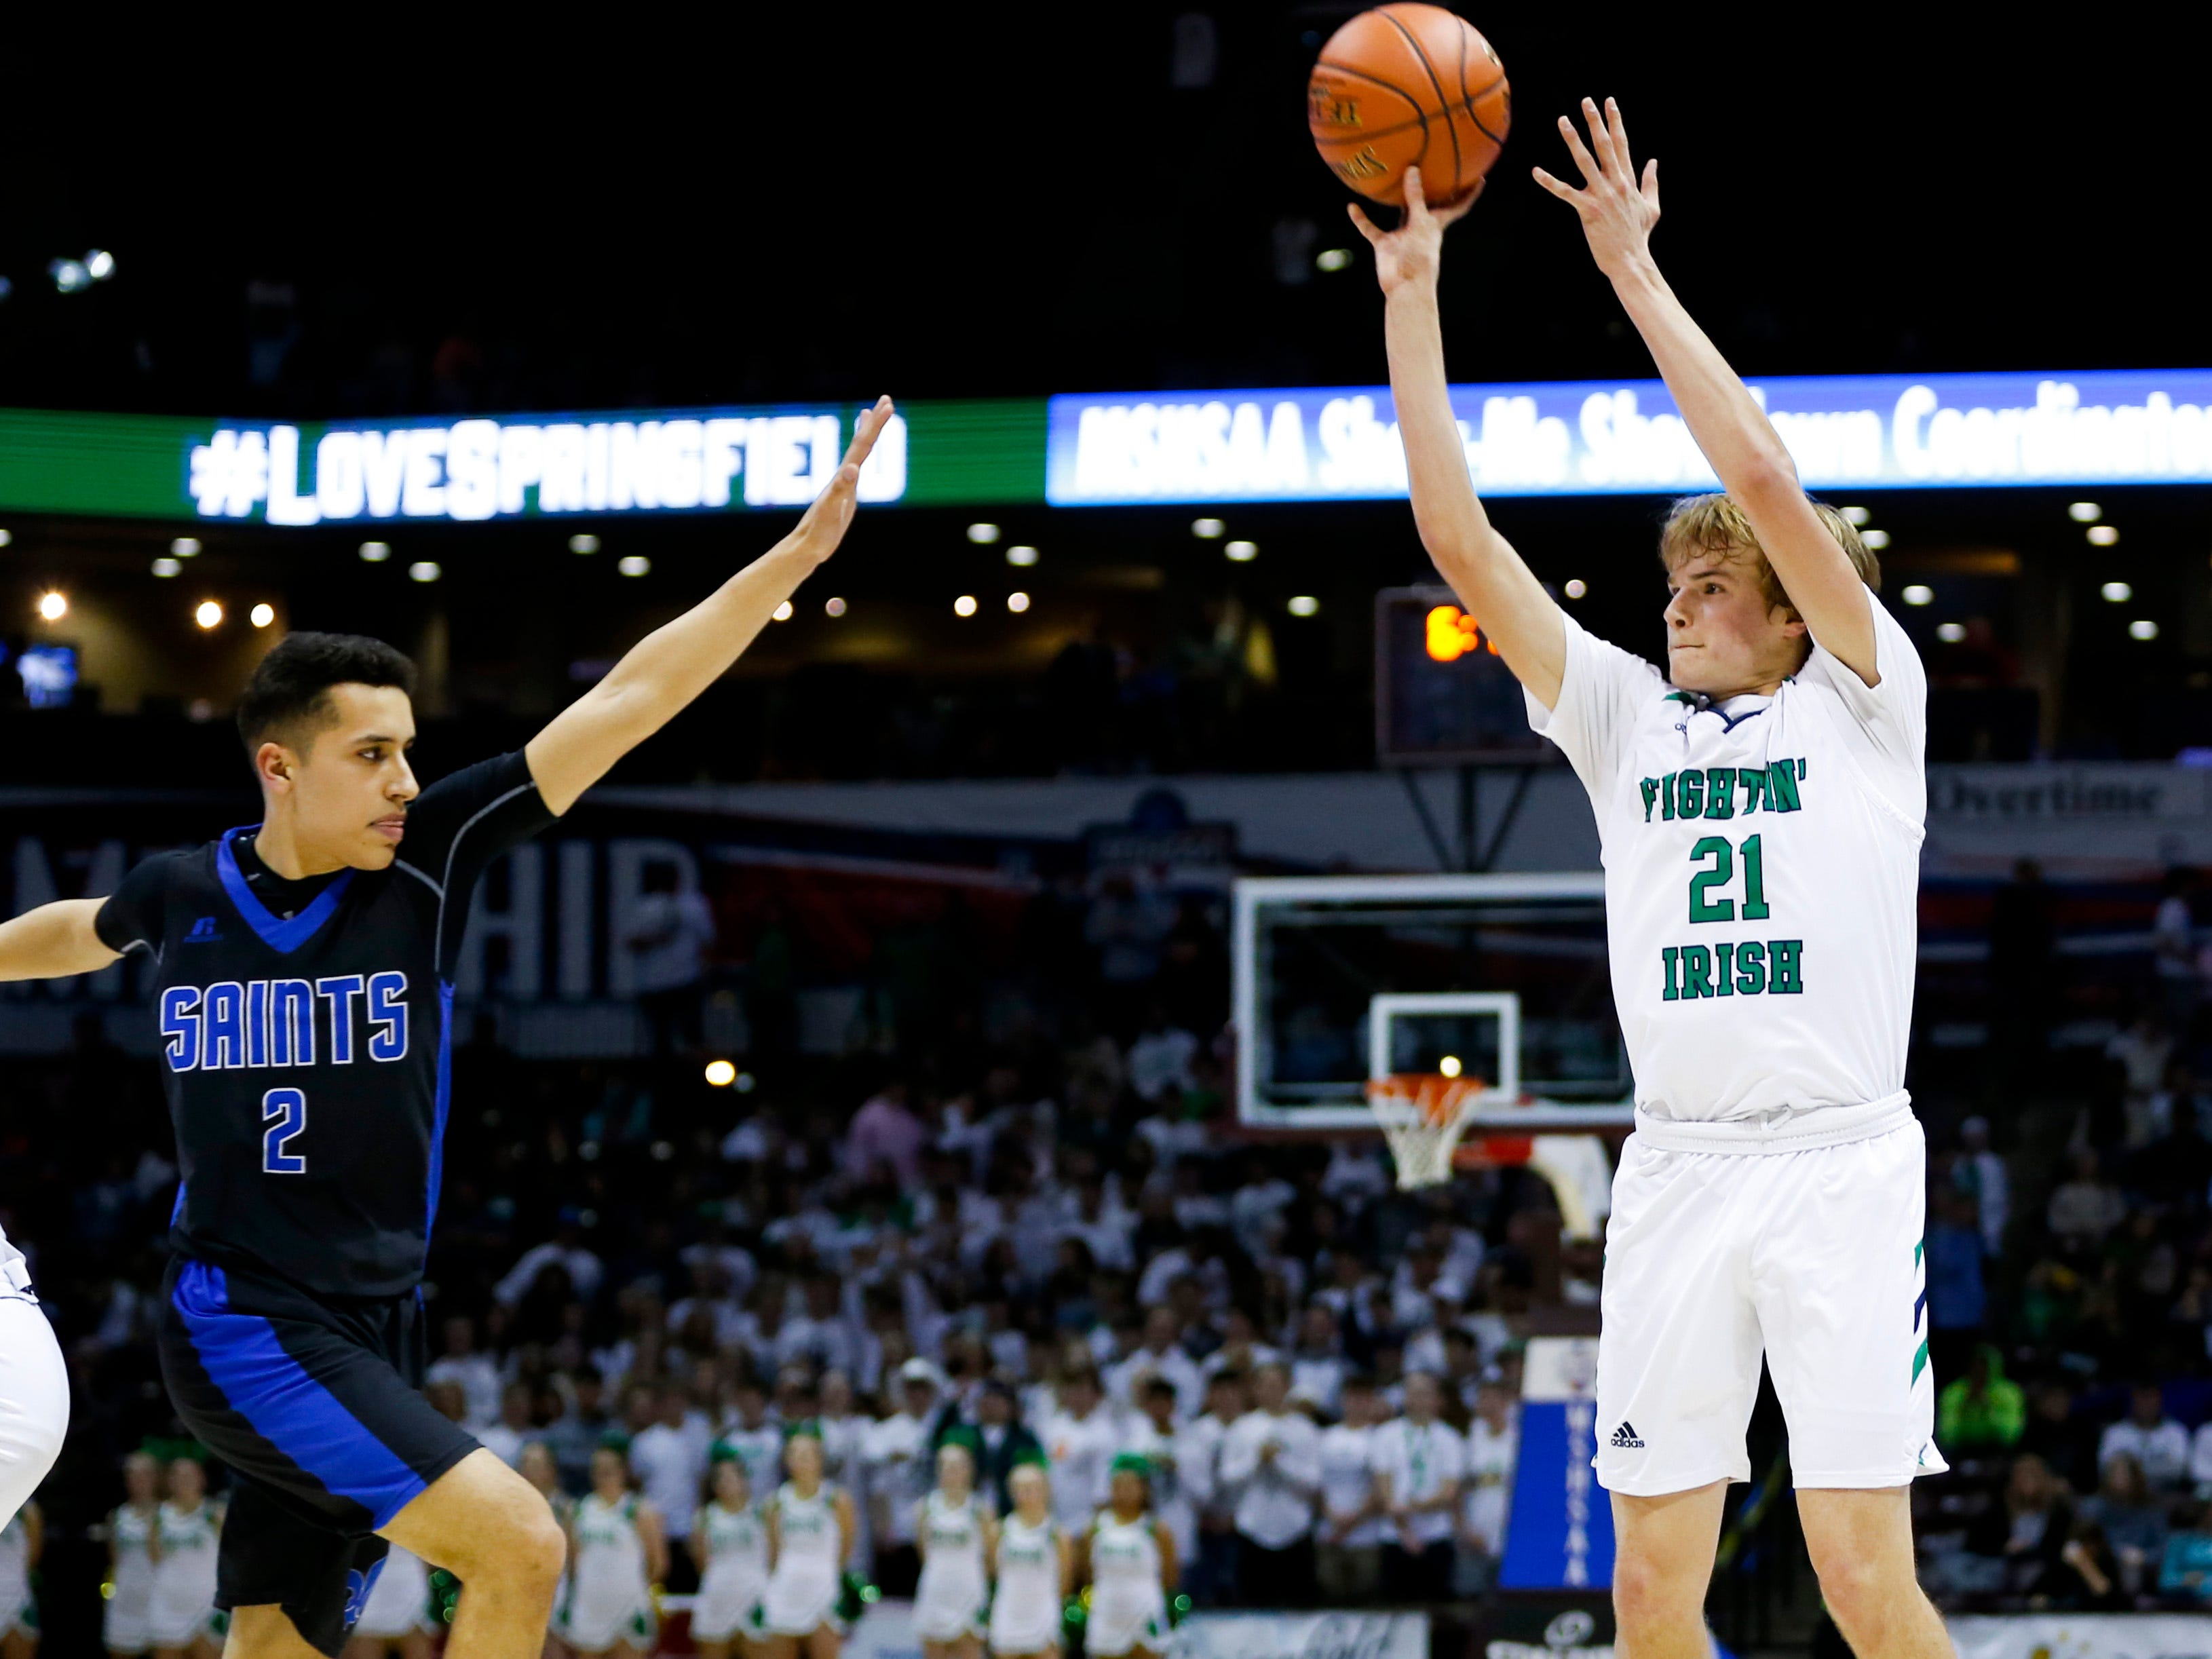 The Springfield Catholic Fightin Irish take on the St. Paul Lutheran Saints in the semifinal round of Class 3 state basketball at JQH Arena on Thursday, March 7, 2019.